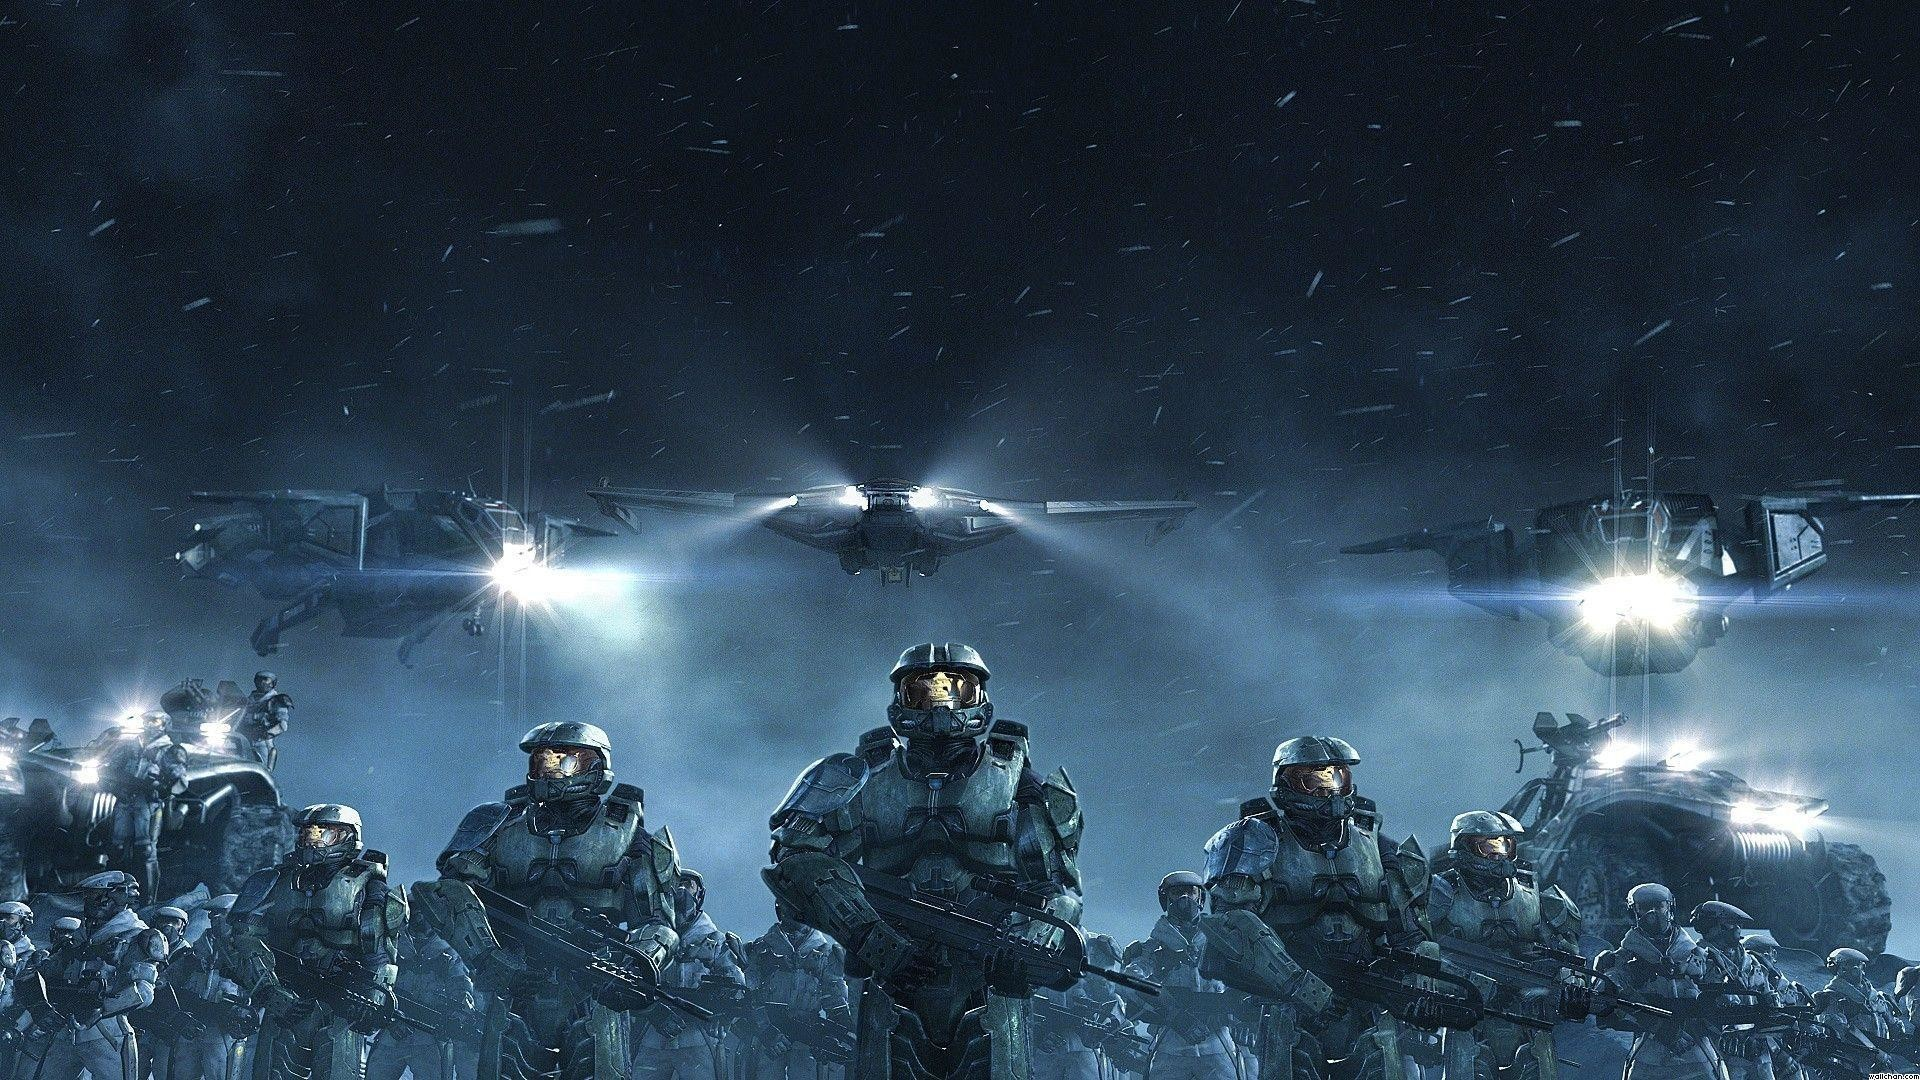 Images For > Halo 4 Spartan Wallpaper